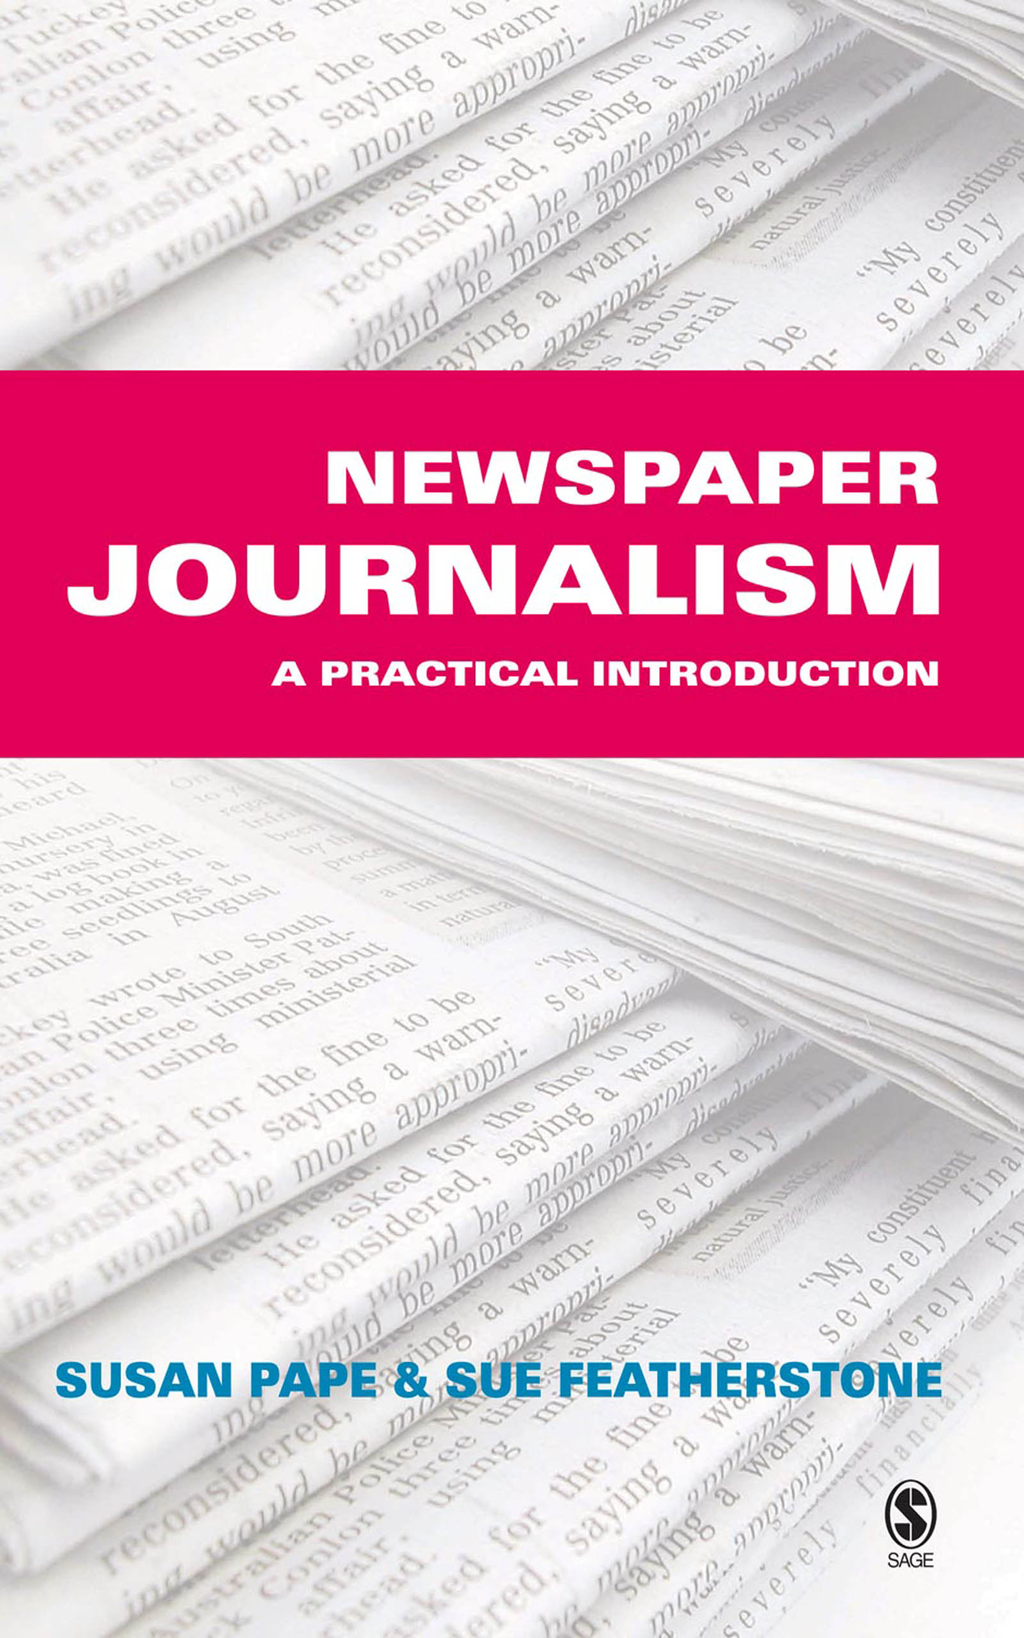 Newspaper Journalism A Practical Introduction